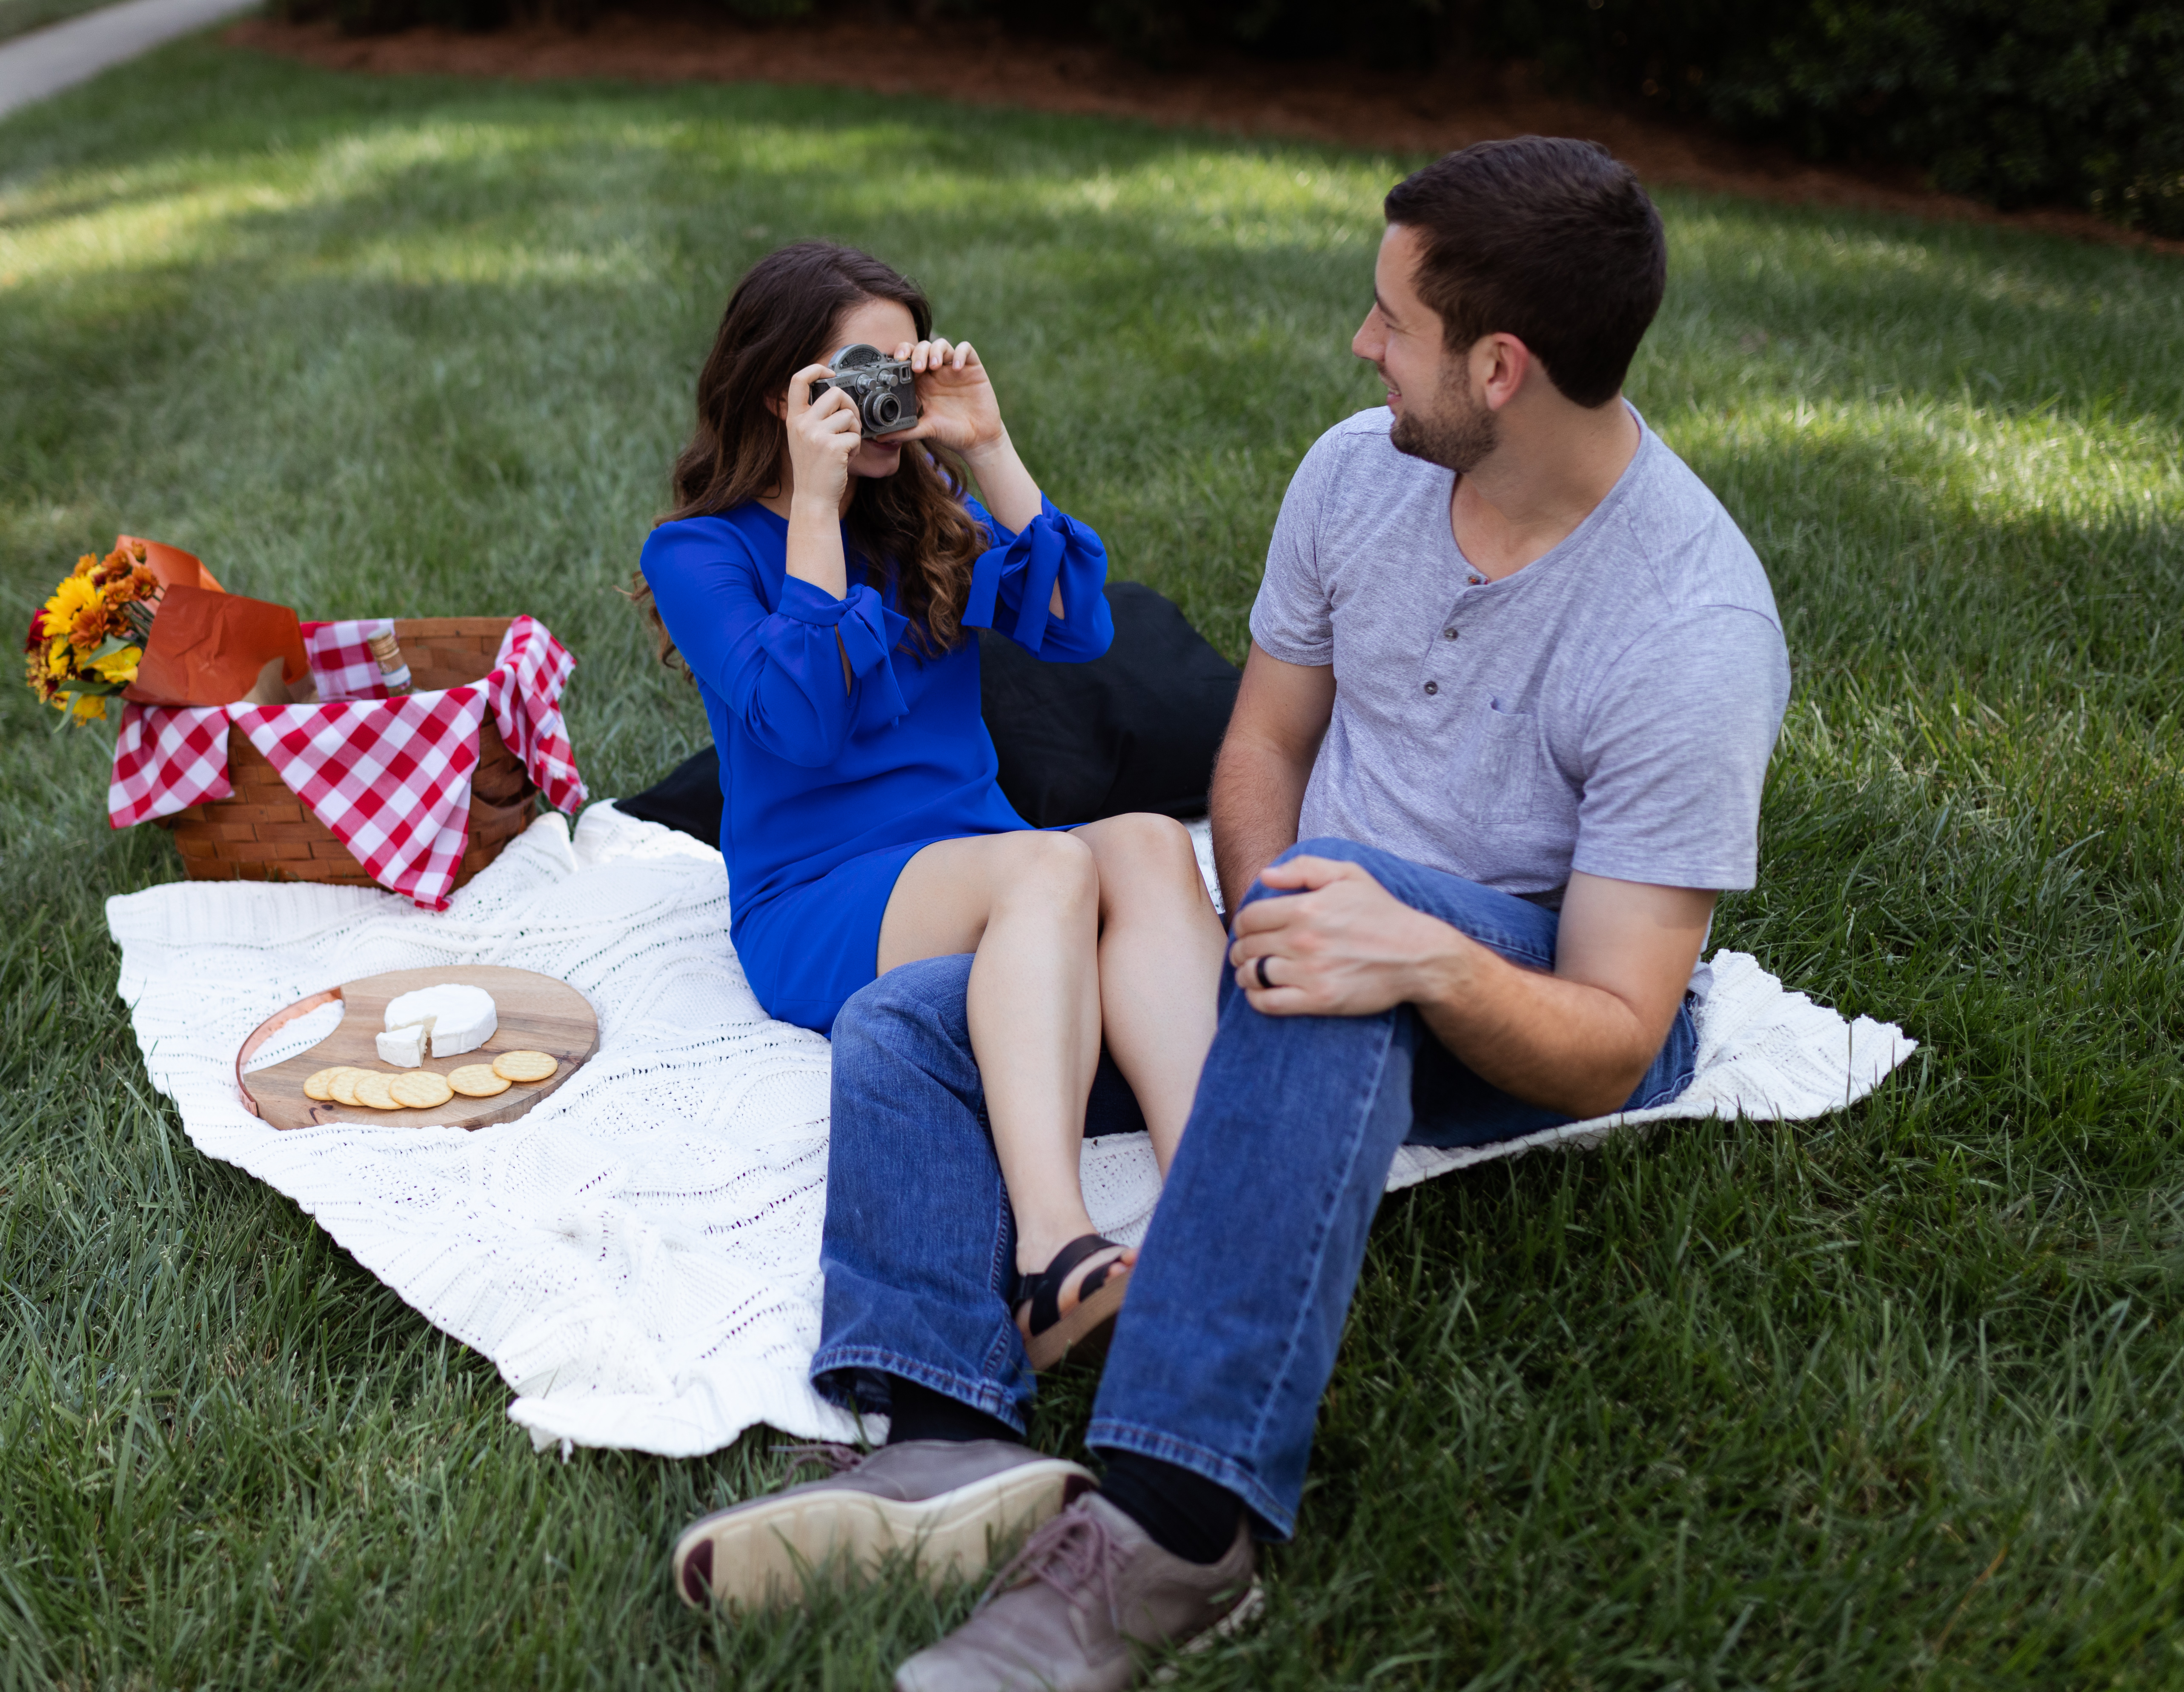 Kelly snaps a photo of her husband on a vintage camera during their picnic. couple portrait by Elizabeth A. Images